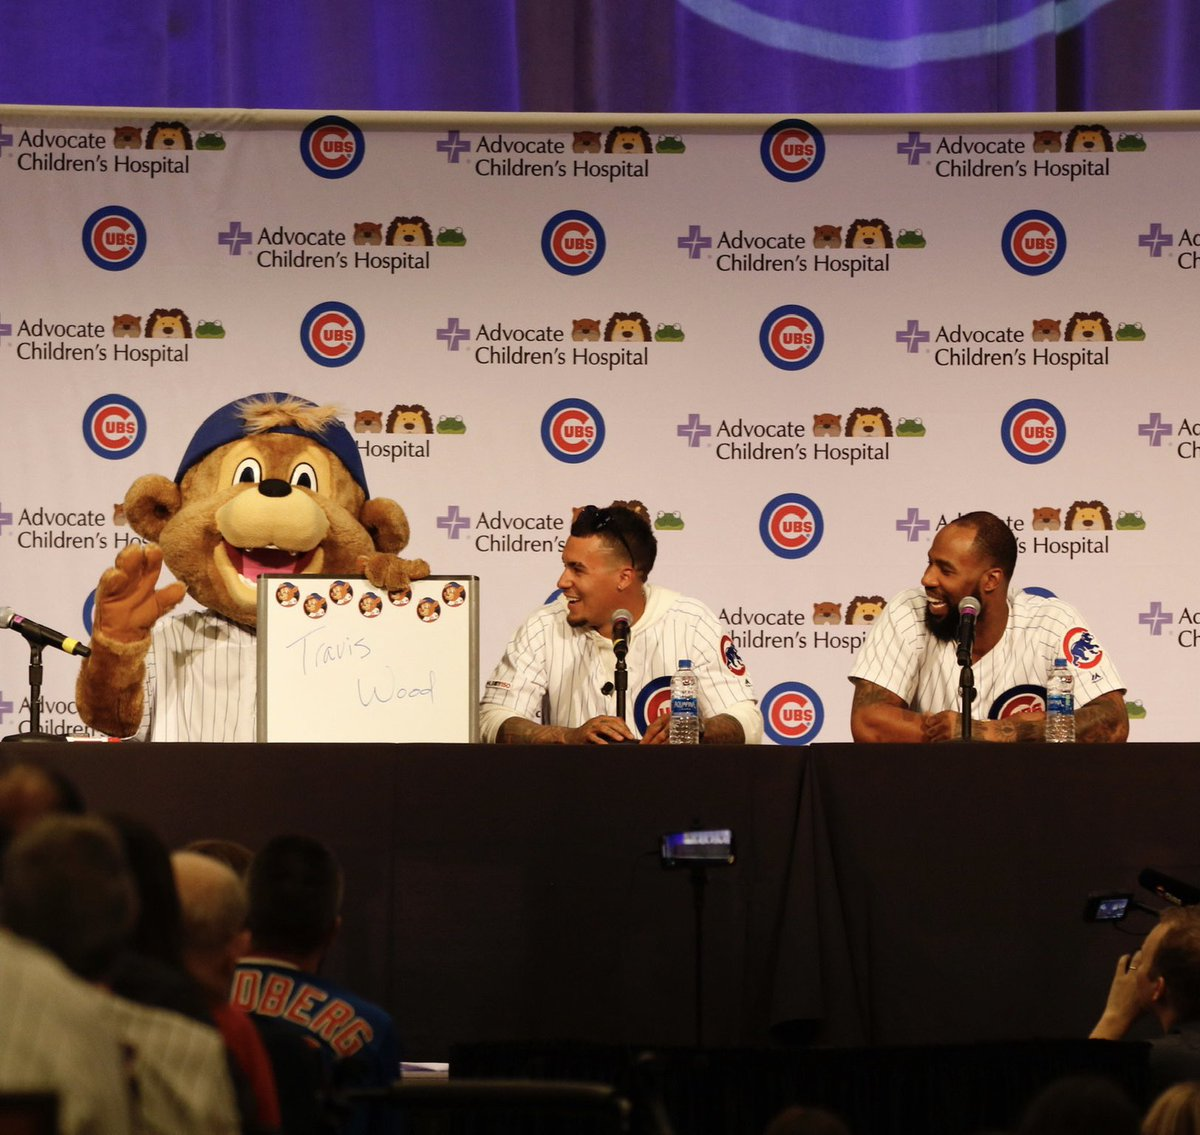 Sure am going to miss my @Cubs family this weekend, can't wait to #CubTogether again soon!